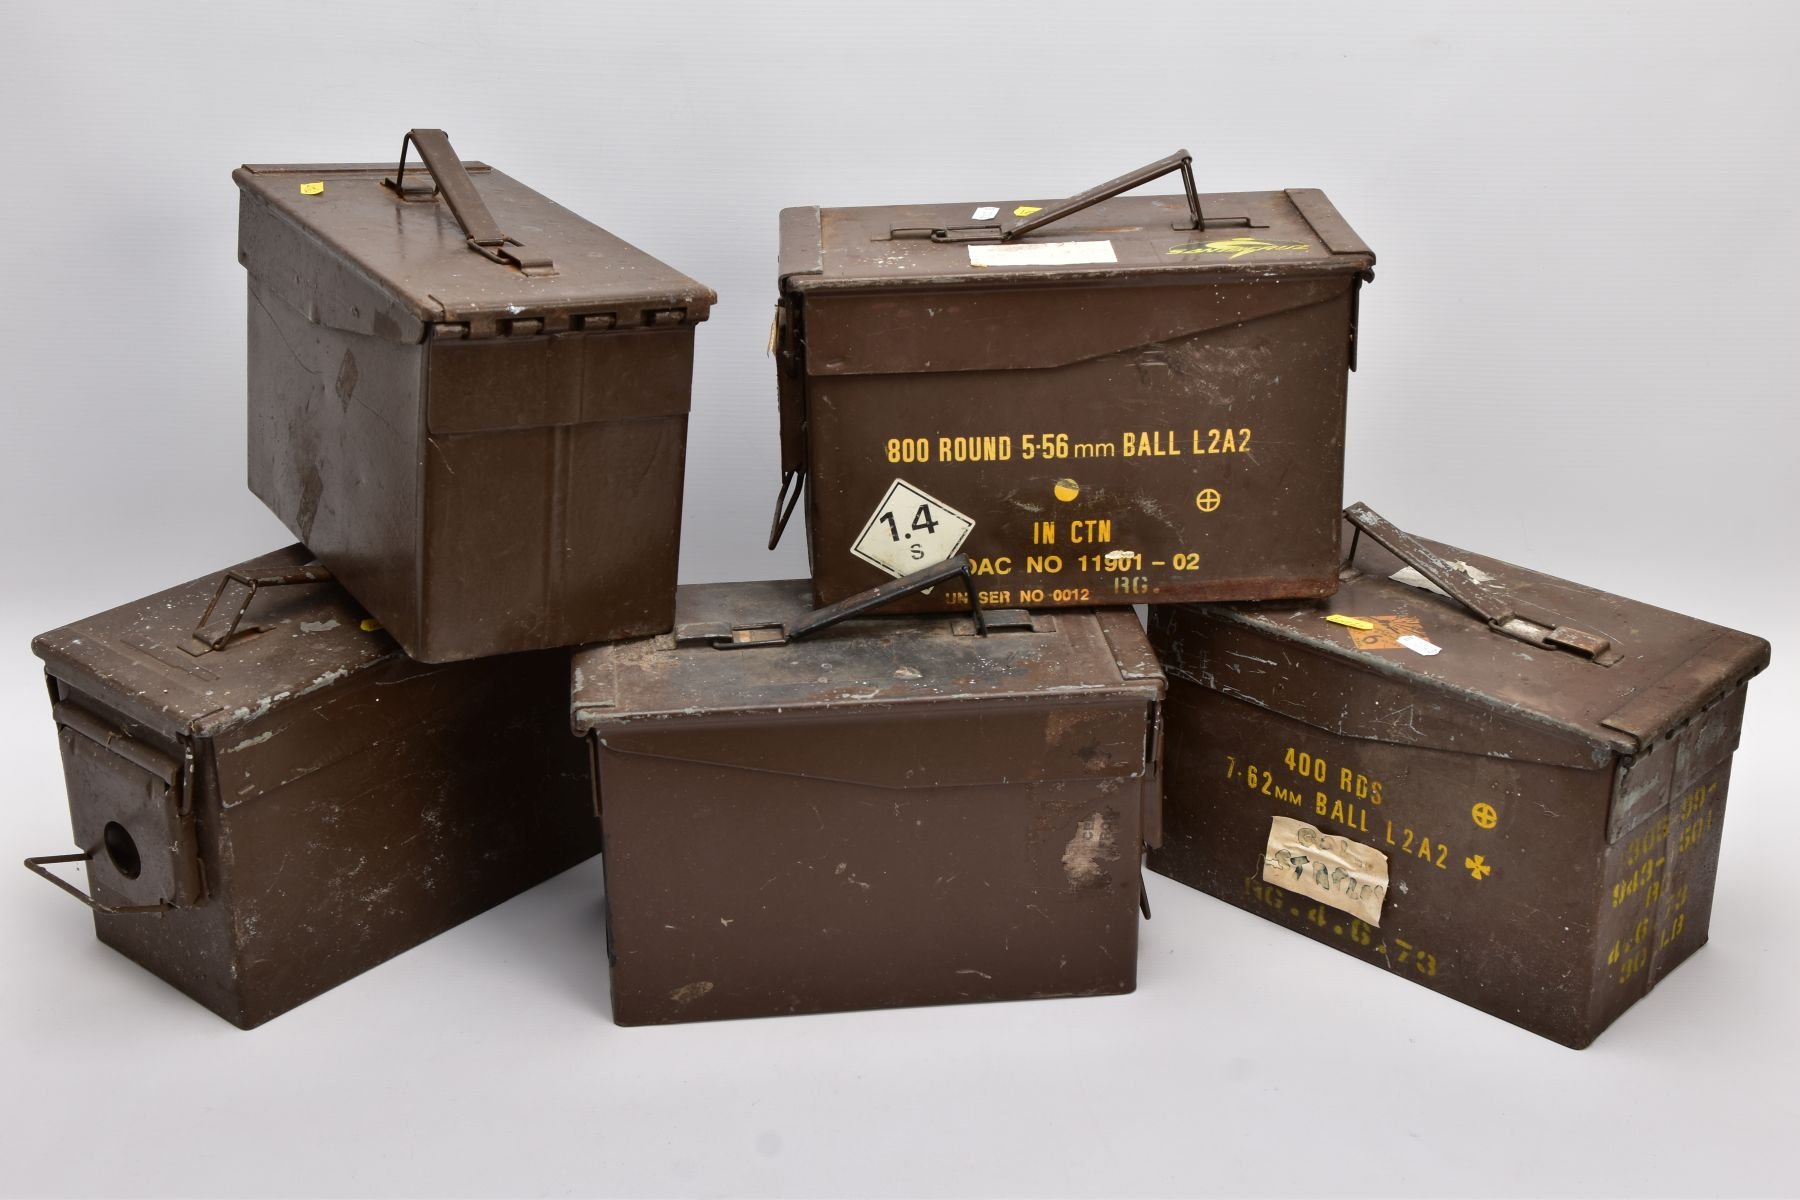 FIVE METAL MILITARY AMMUNITION BOXES WWII and later era, two of them being marked 5.56mm and 7.62mm, - Image 2 of 3